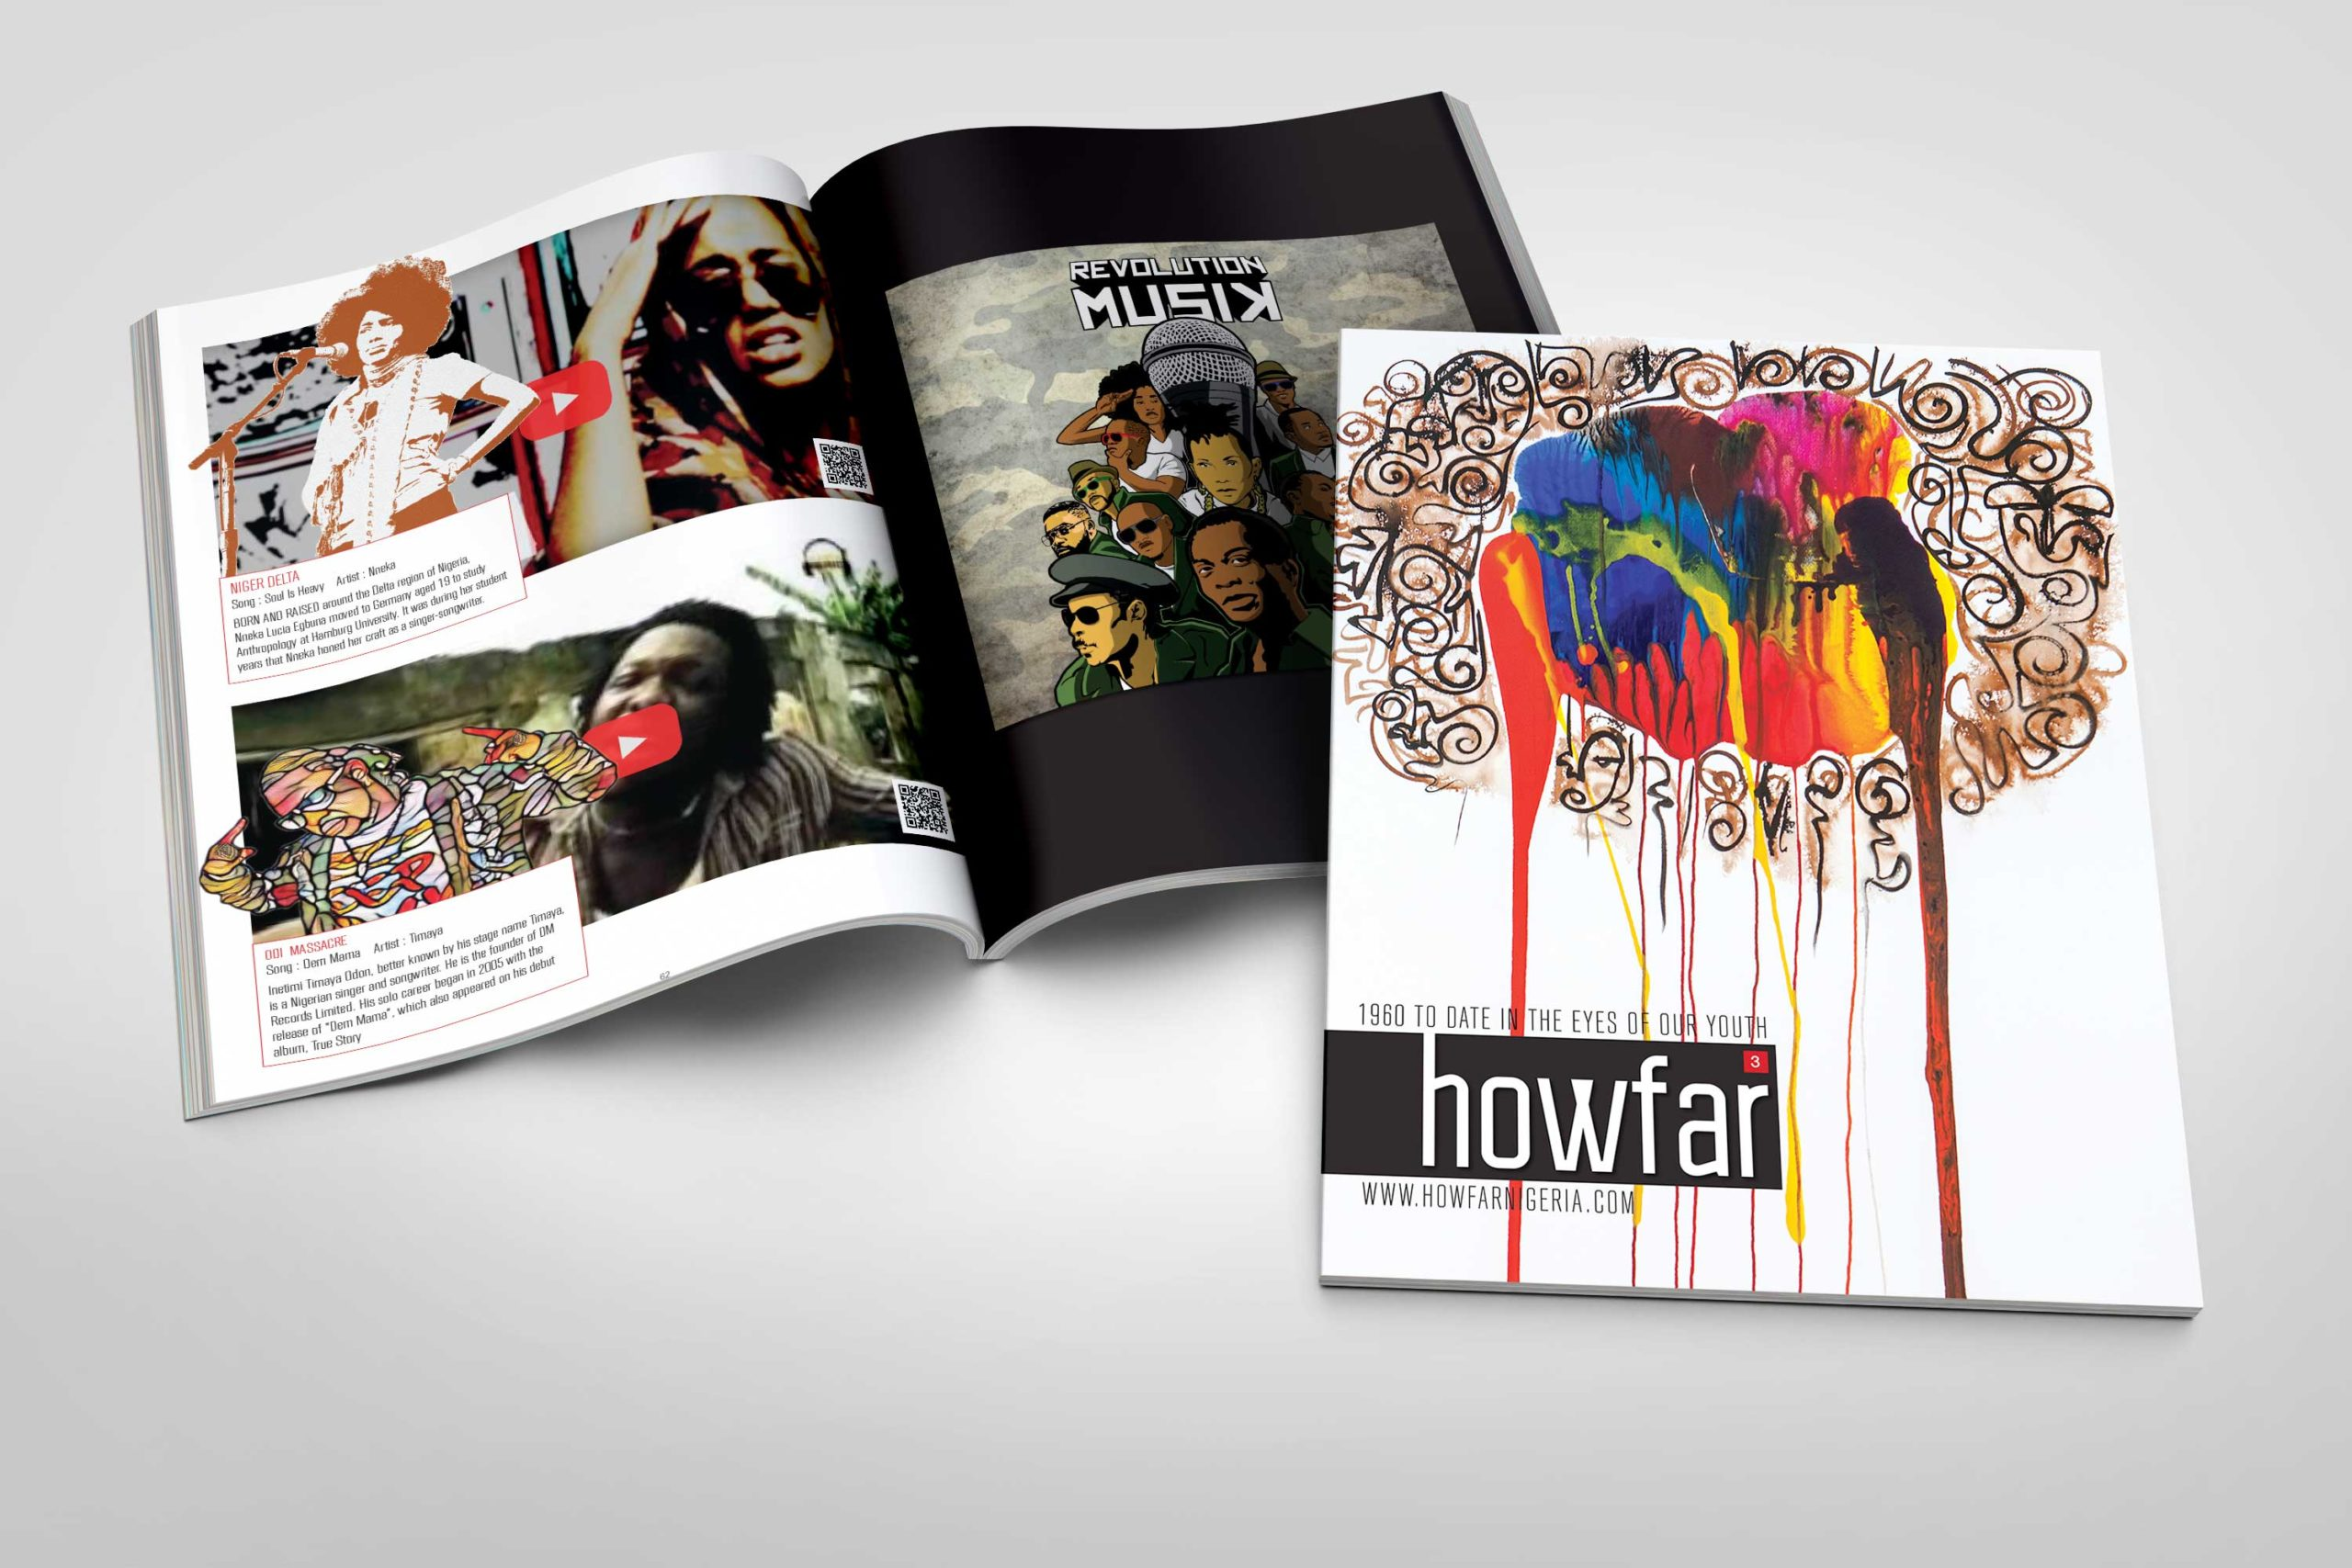 <strong>Howfar </strong> is available in kindle and print formats.